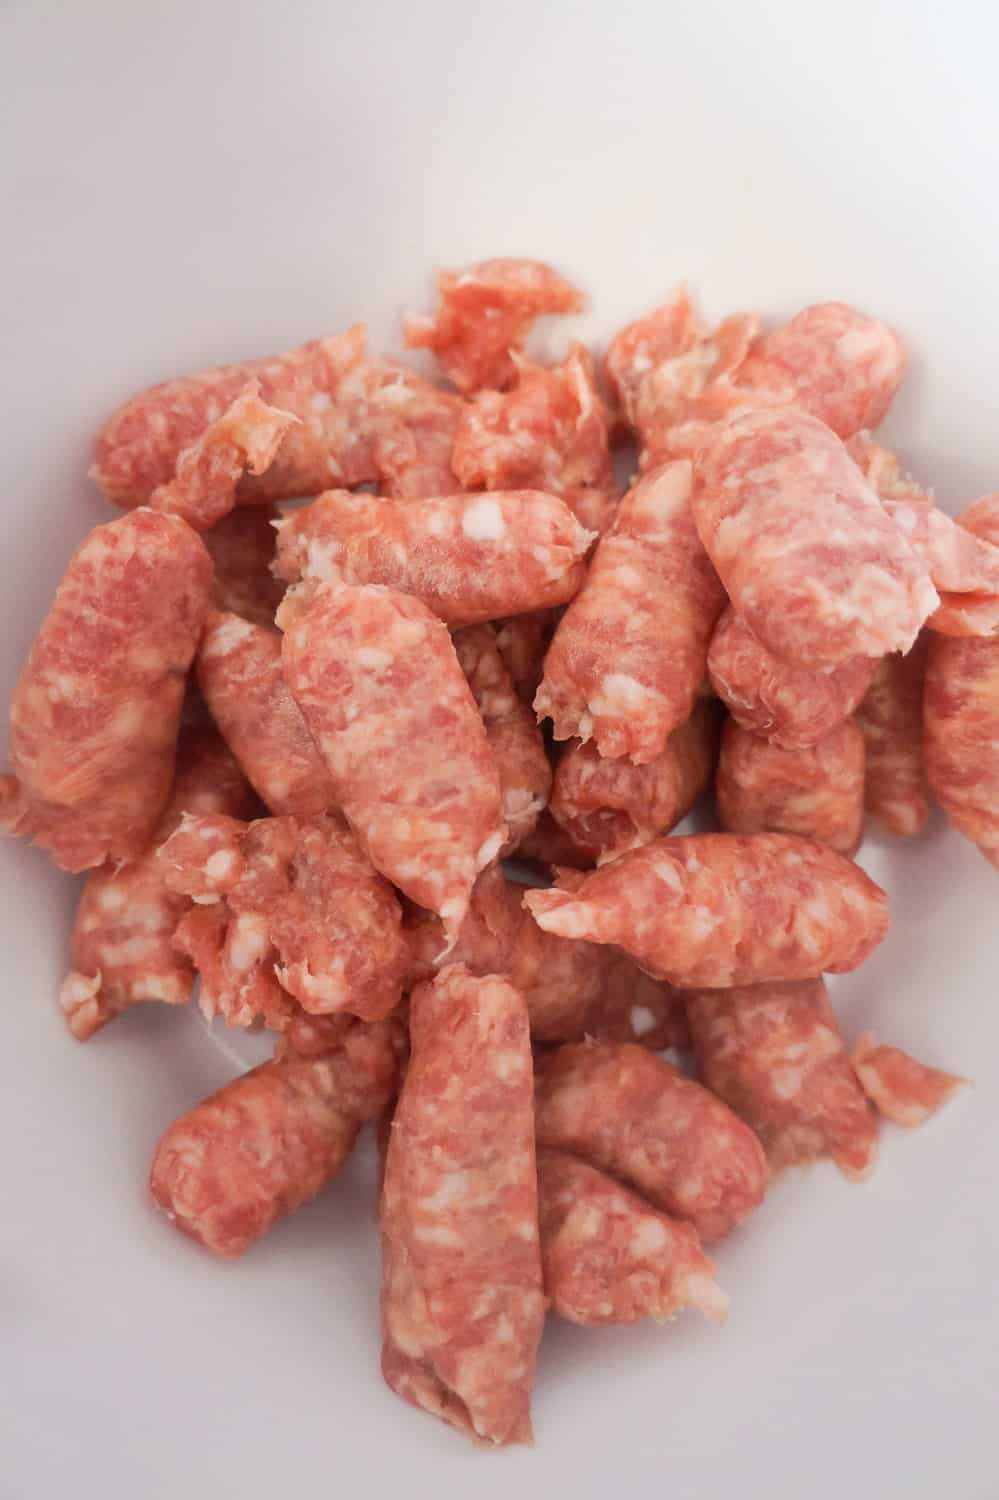 breakfast sausage meat removed from casings